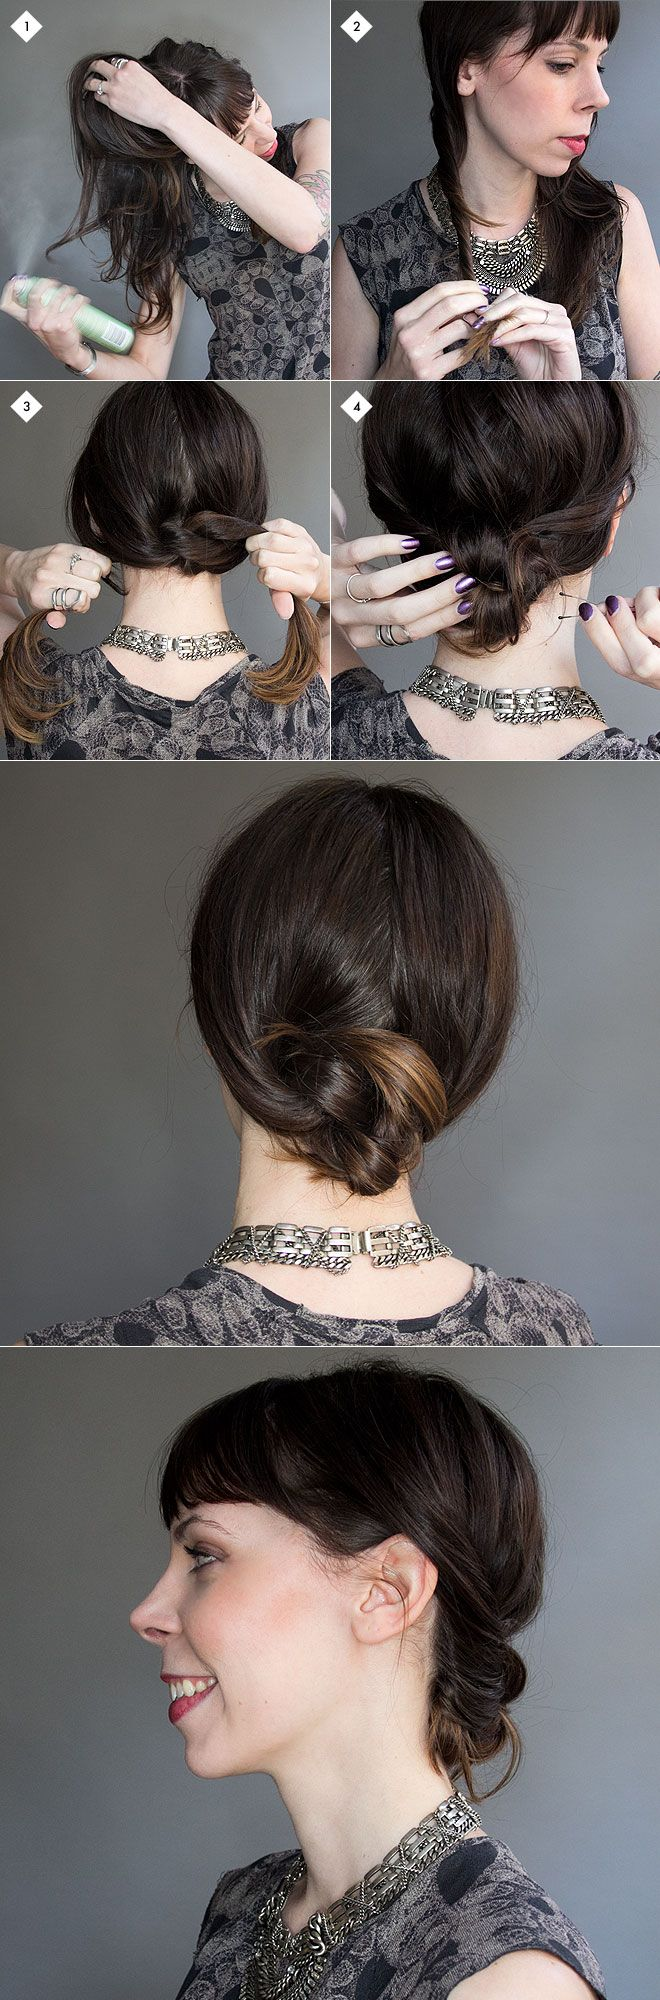 best corte pelo images on pinterest beautiful women change and